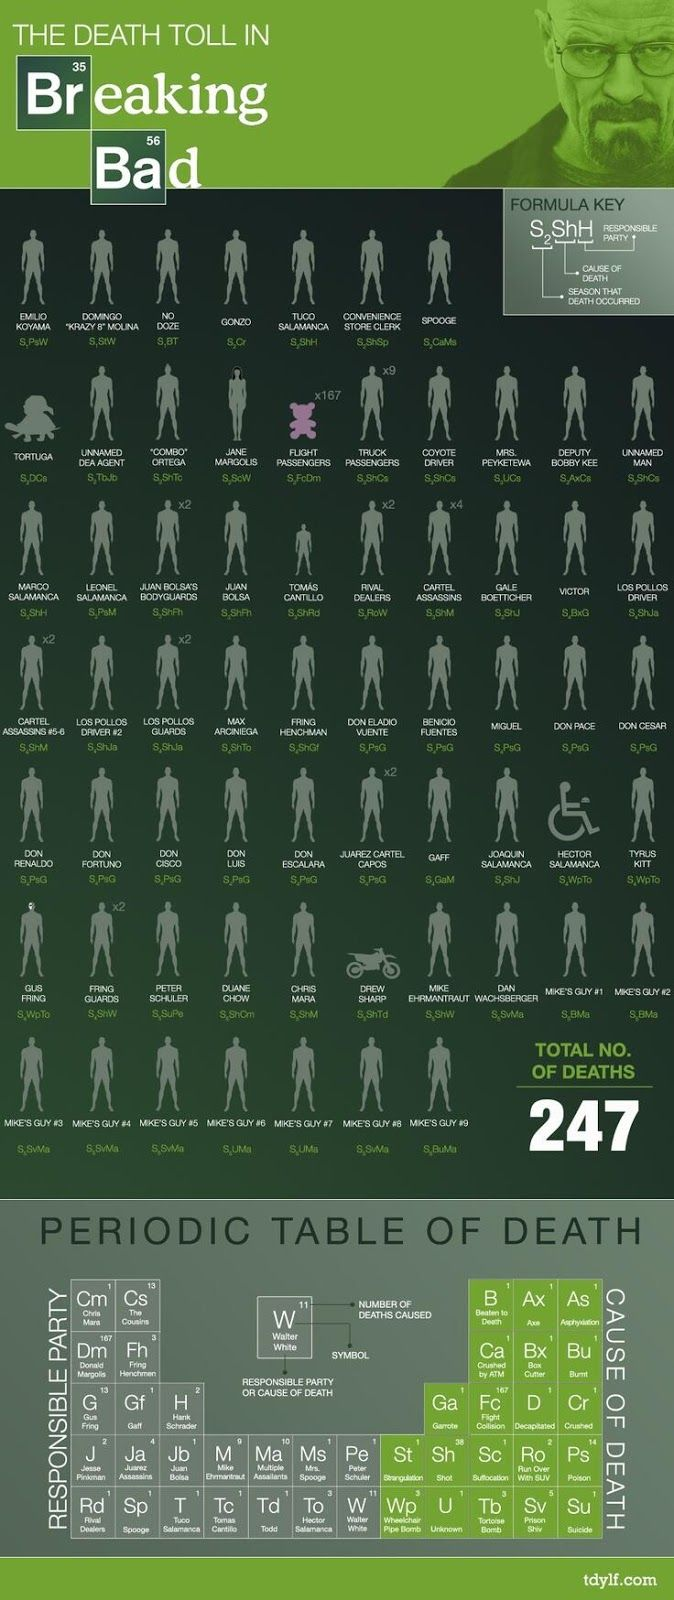 The Ultimate #BreakingBad #Infographic